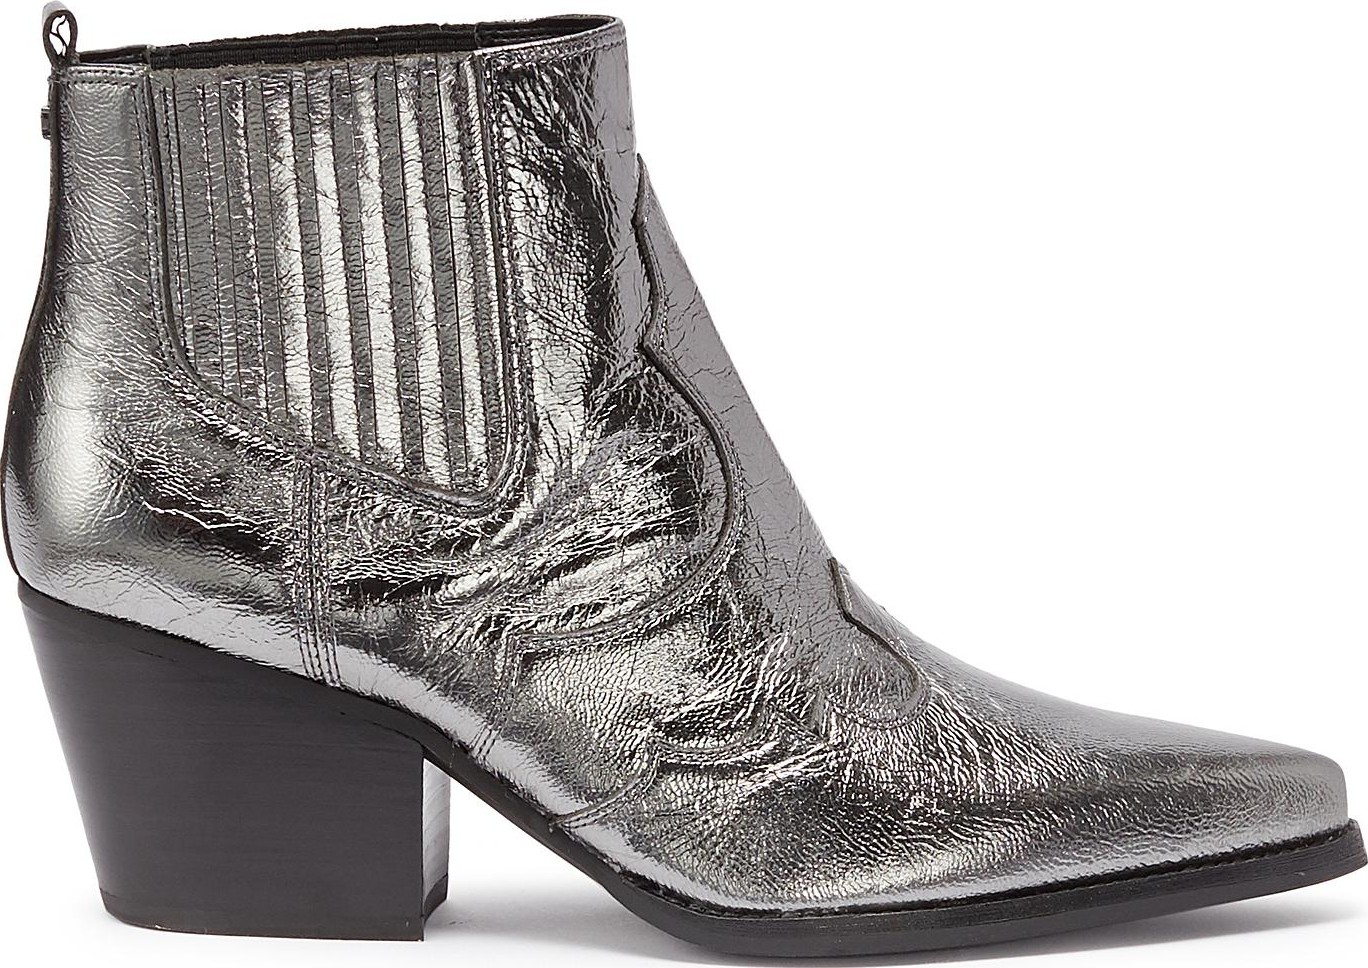 cabc877bf Sam Edelman  Winona  patent leather panelled ankle boots - Mkt